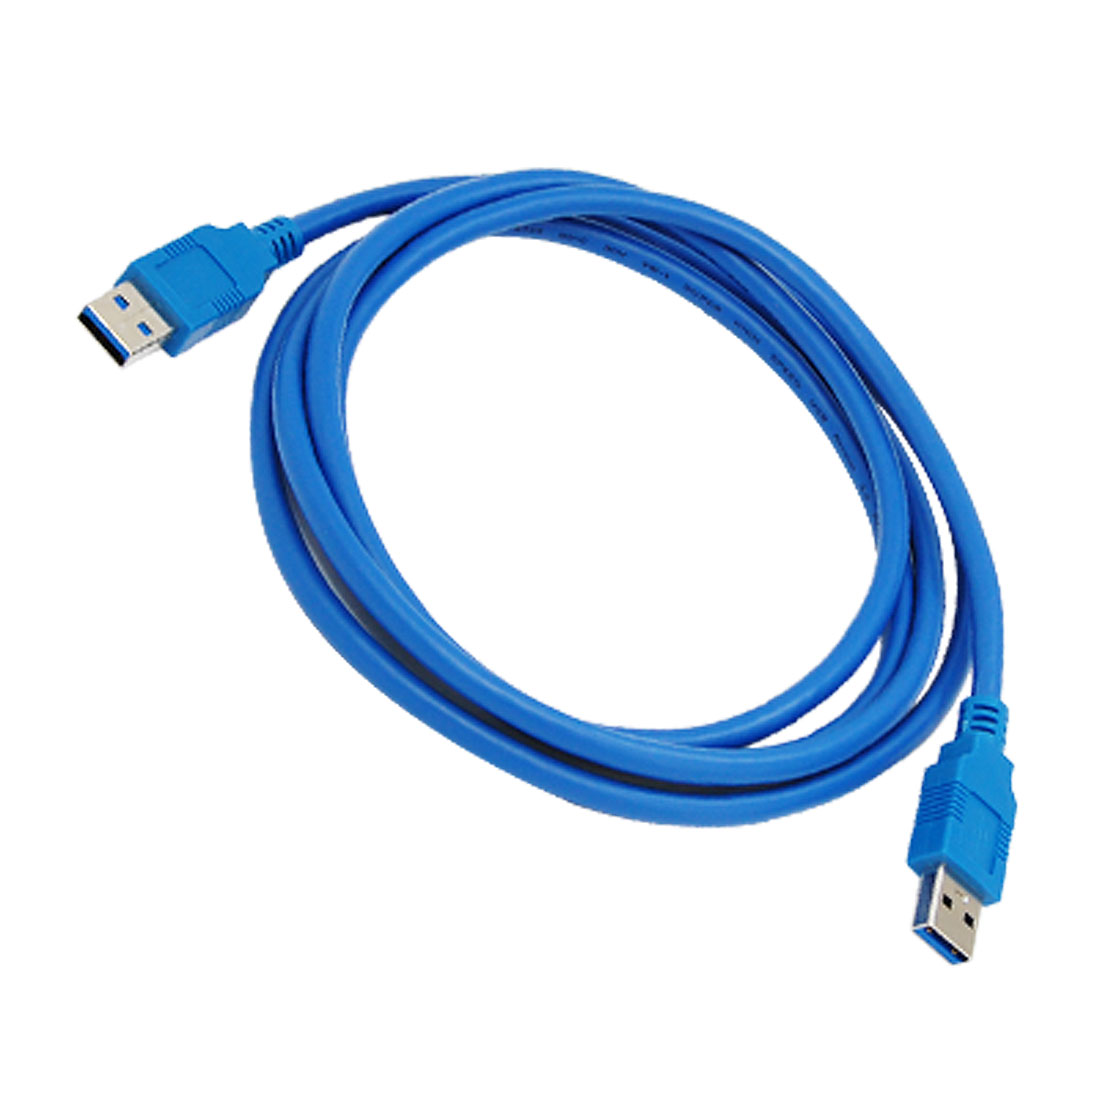 150cm Computer USB3.0 A Male to A Male Extension Cable